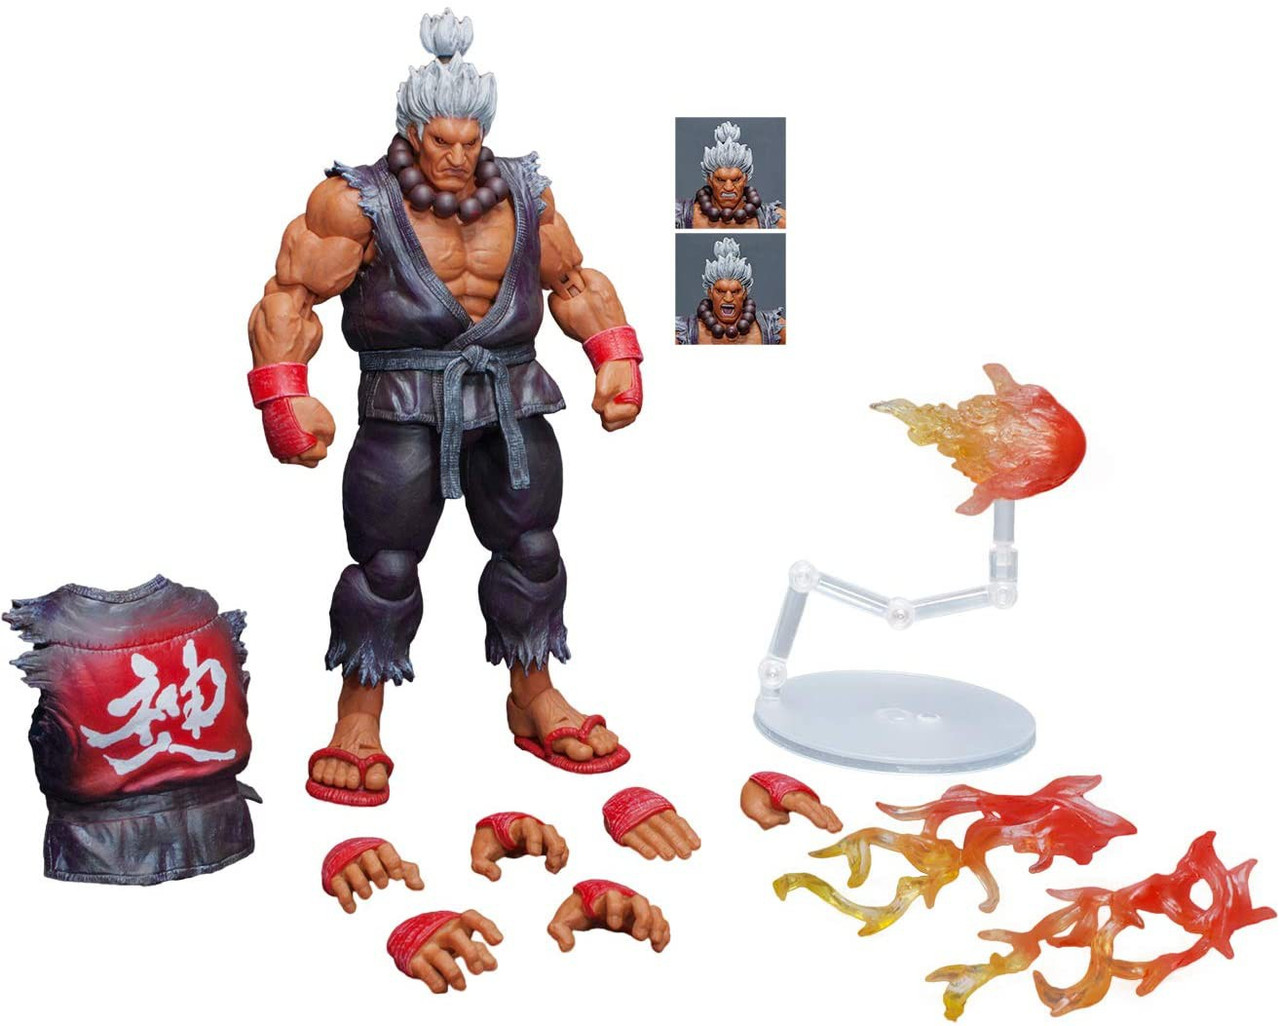 STORM COLLECTIBLES STREET FIGHTER V AKUMA ACTION FIGURE